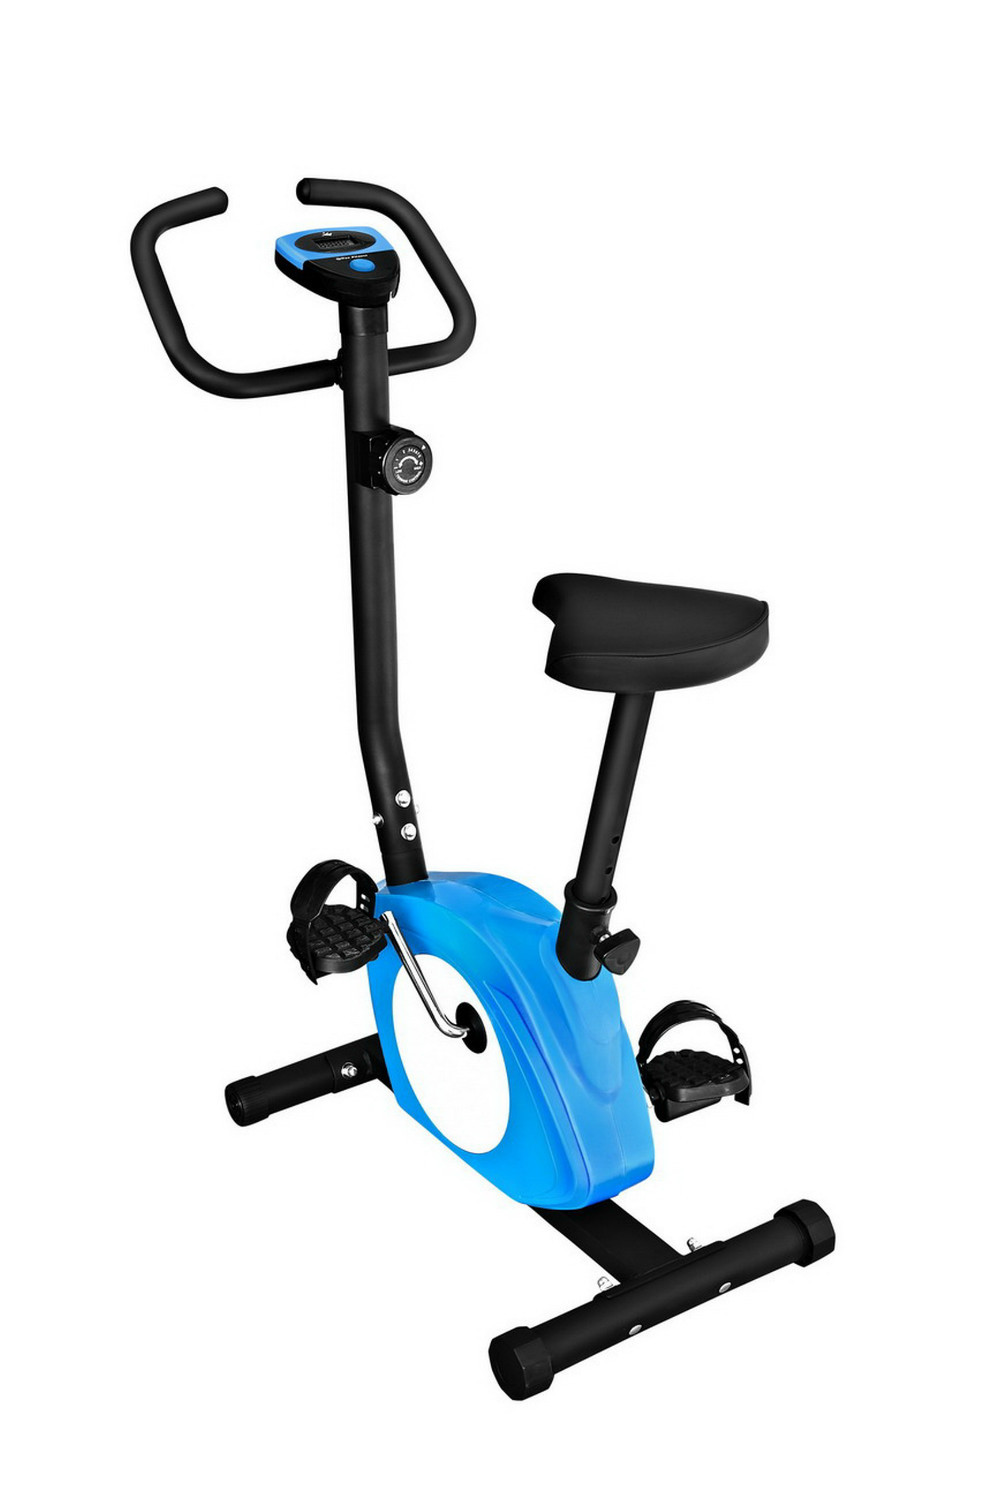 Bicycle home magnetic exercise bike indoor fitness